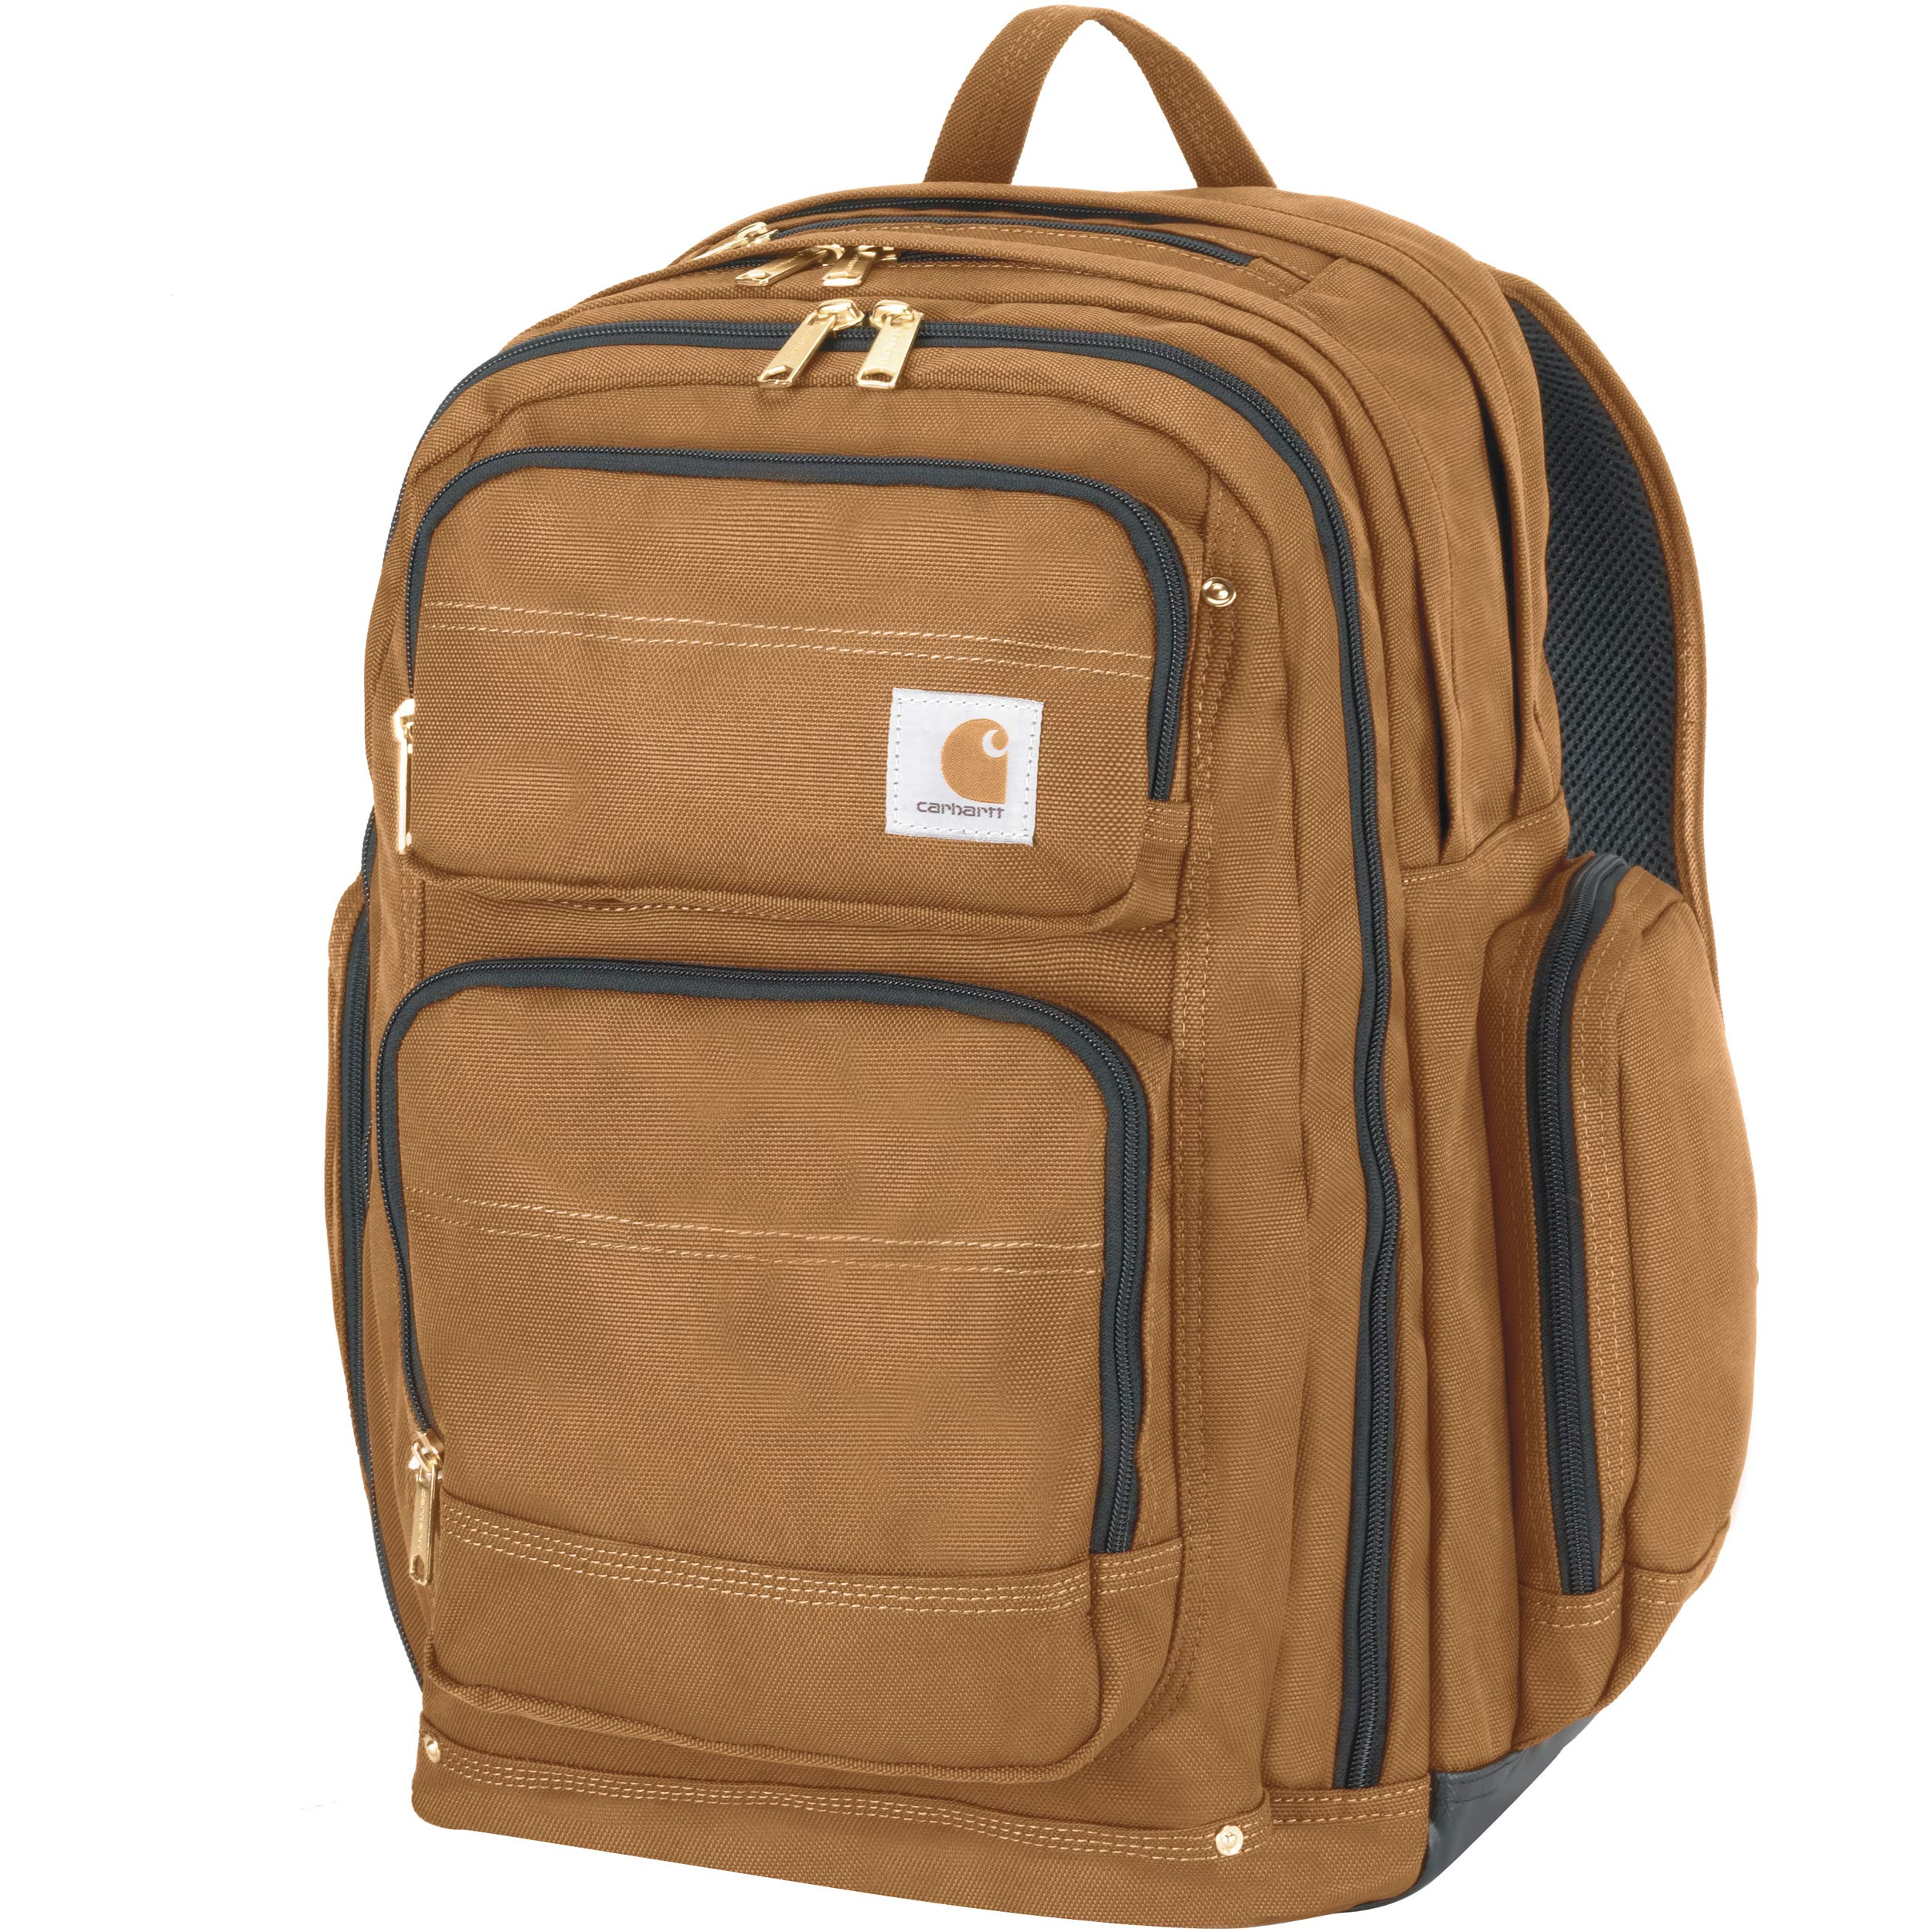 Carhartt Legacy Deluxe Work Backpack with 17-Inch Laptop Compartment, Carhartt Brown by Carhartt